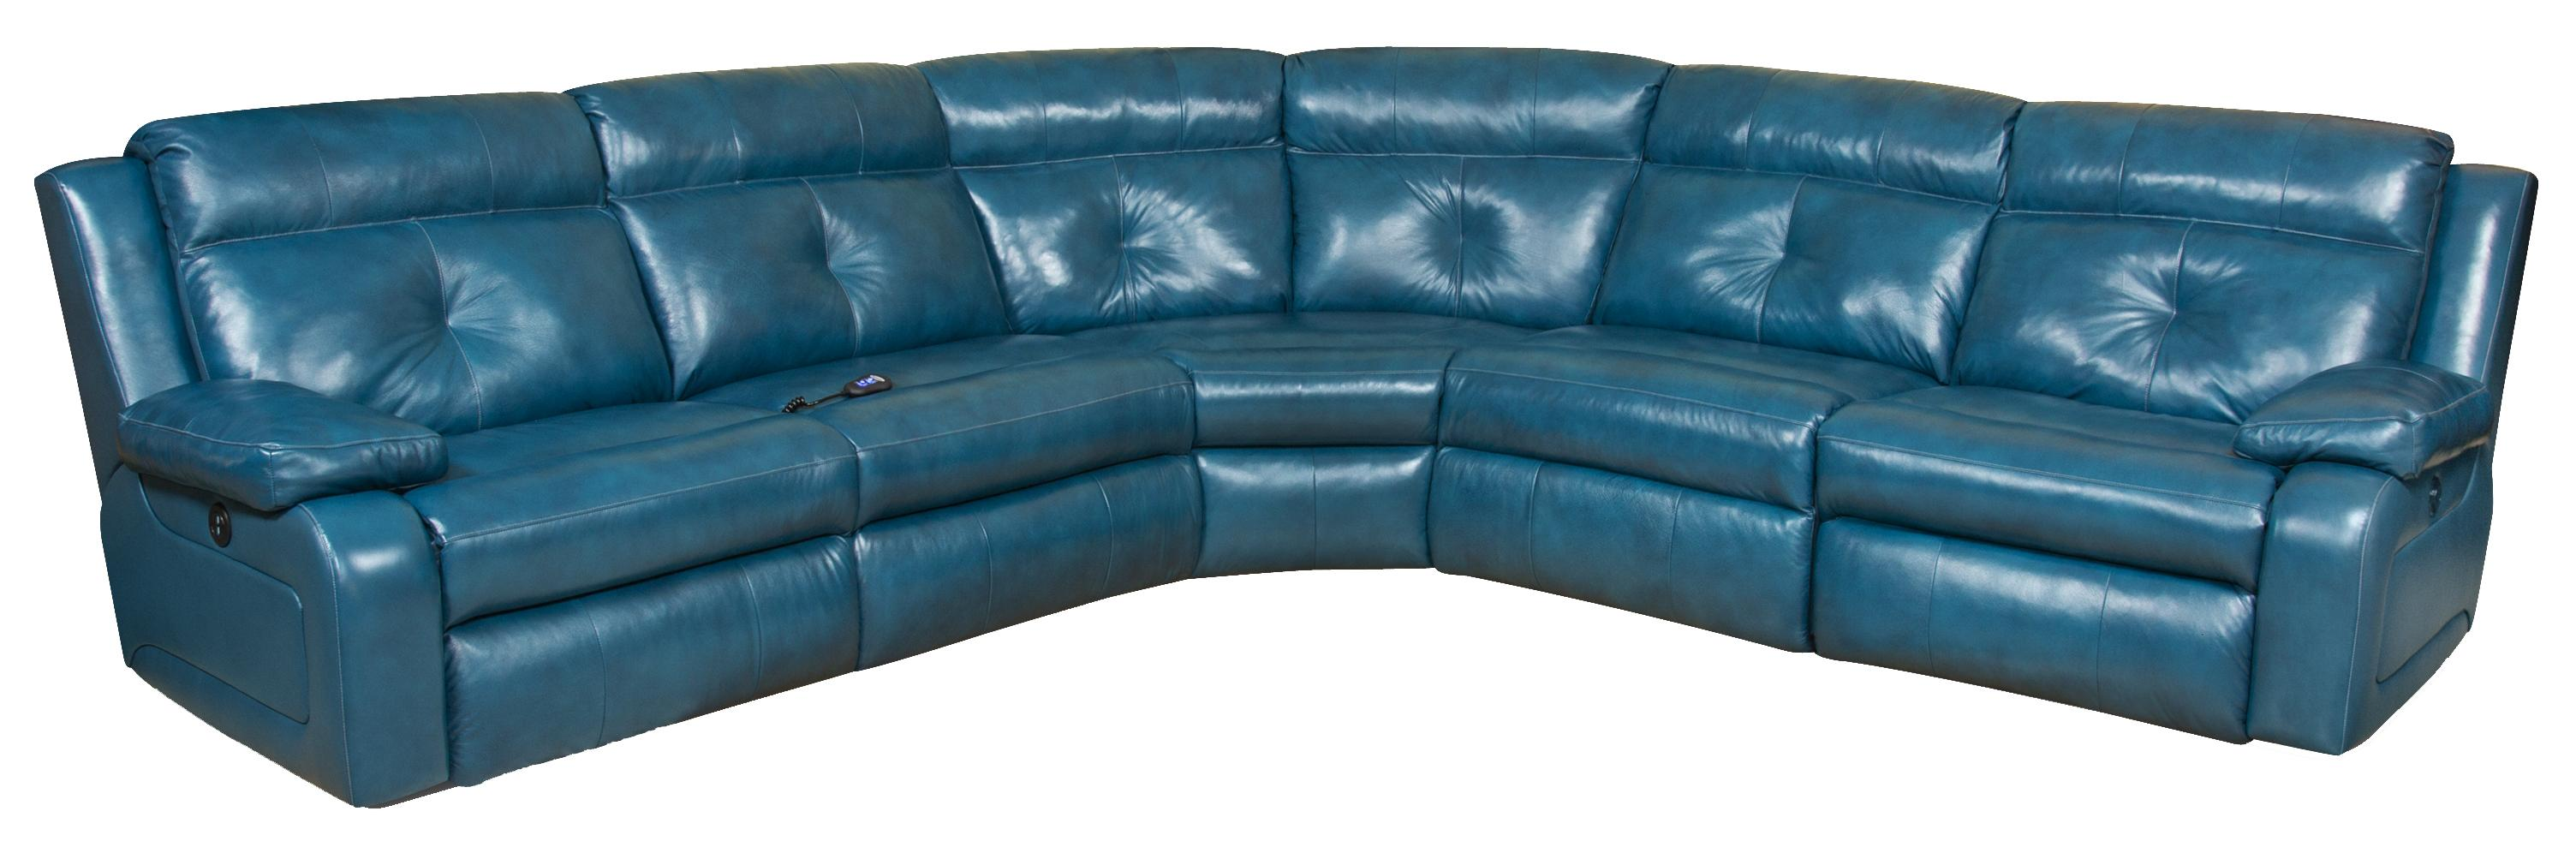 Southern Motion Dash Reclining Sectional Sofa FMG Local Home